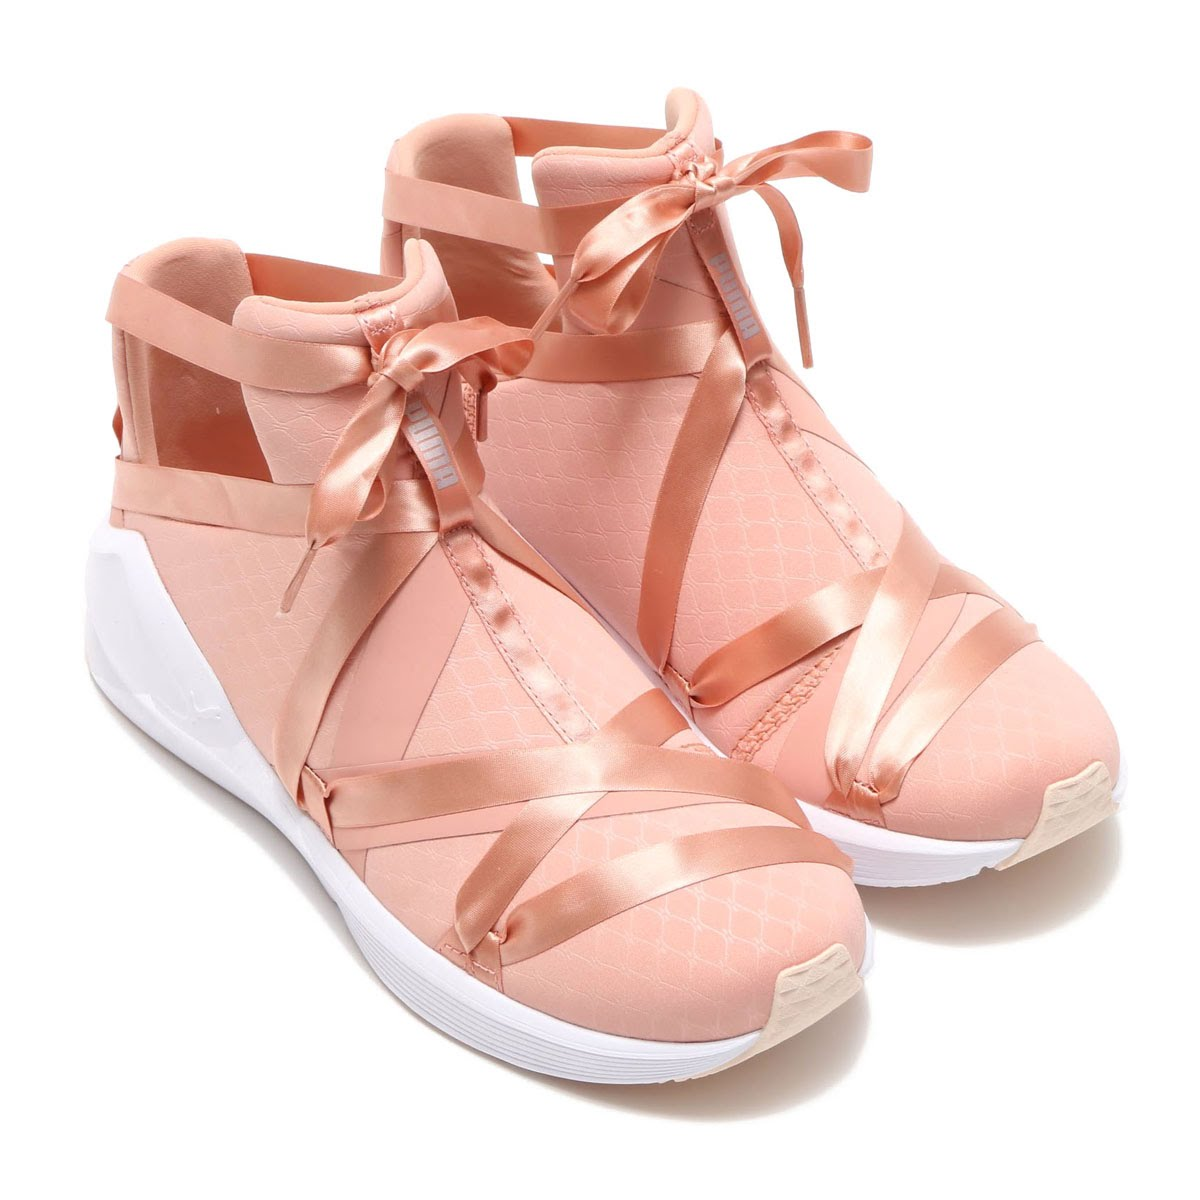 ce636f3fbb3 PUMA FIERCE ROPE SATIN EP WOMENS (プーマフィアースロープサテン EP women) PEACH BEIGE  18SP-I